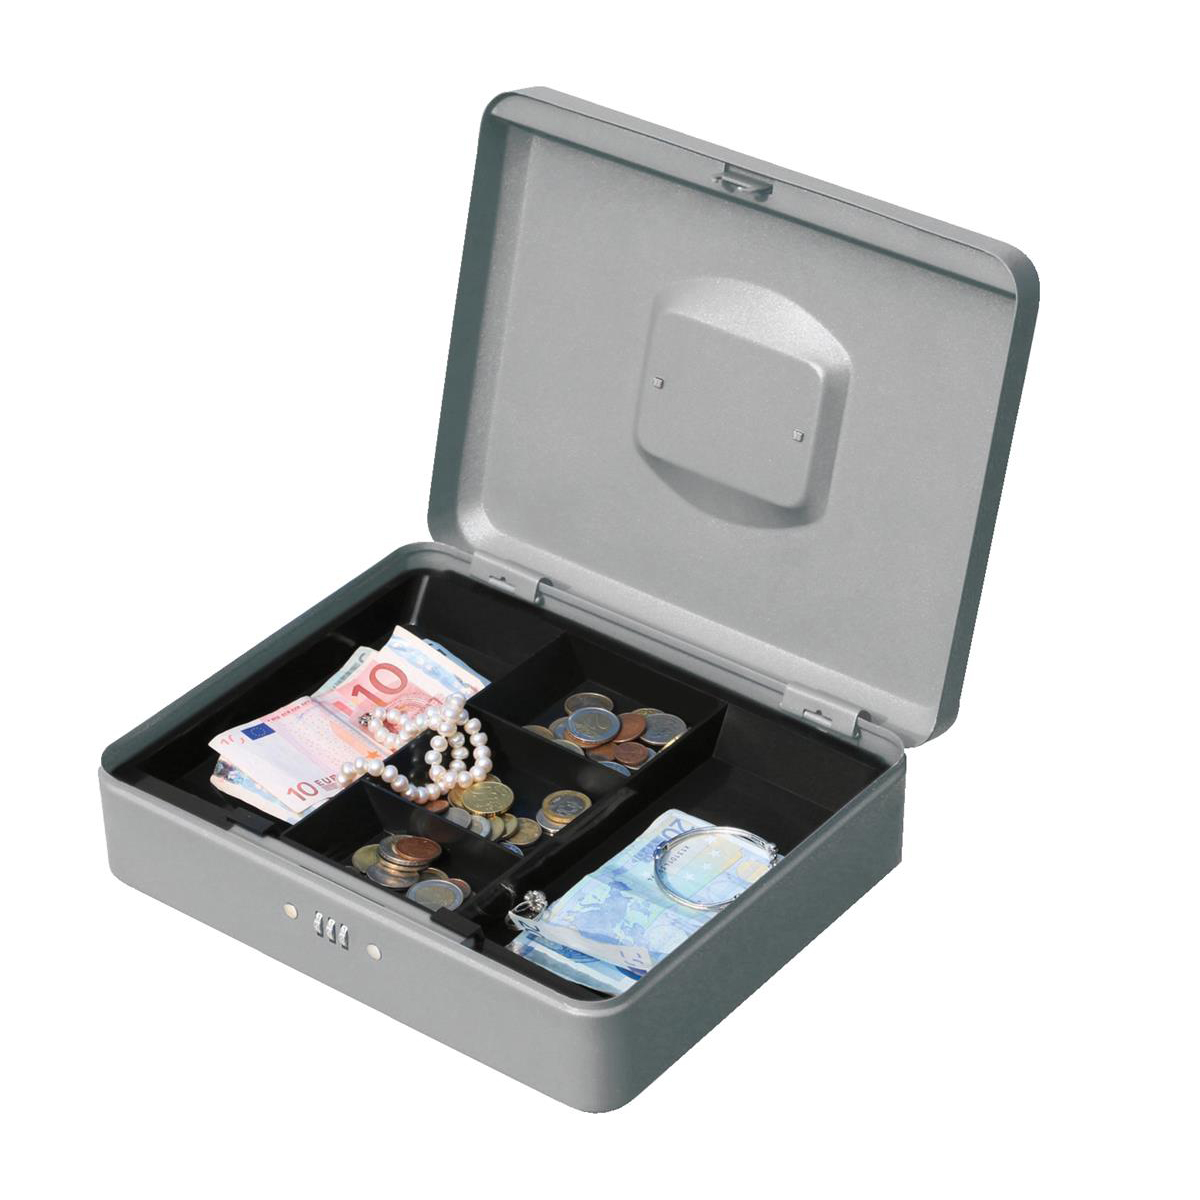 Cash or ticket boxes 5 Star Facilities Premium Cash Box with Coin Tray Metal Combination Lock W300xD240xH90mm Grey